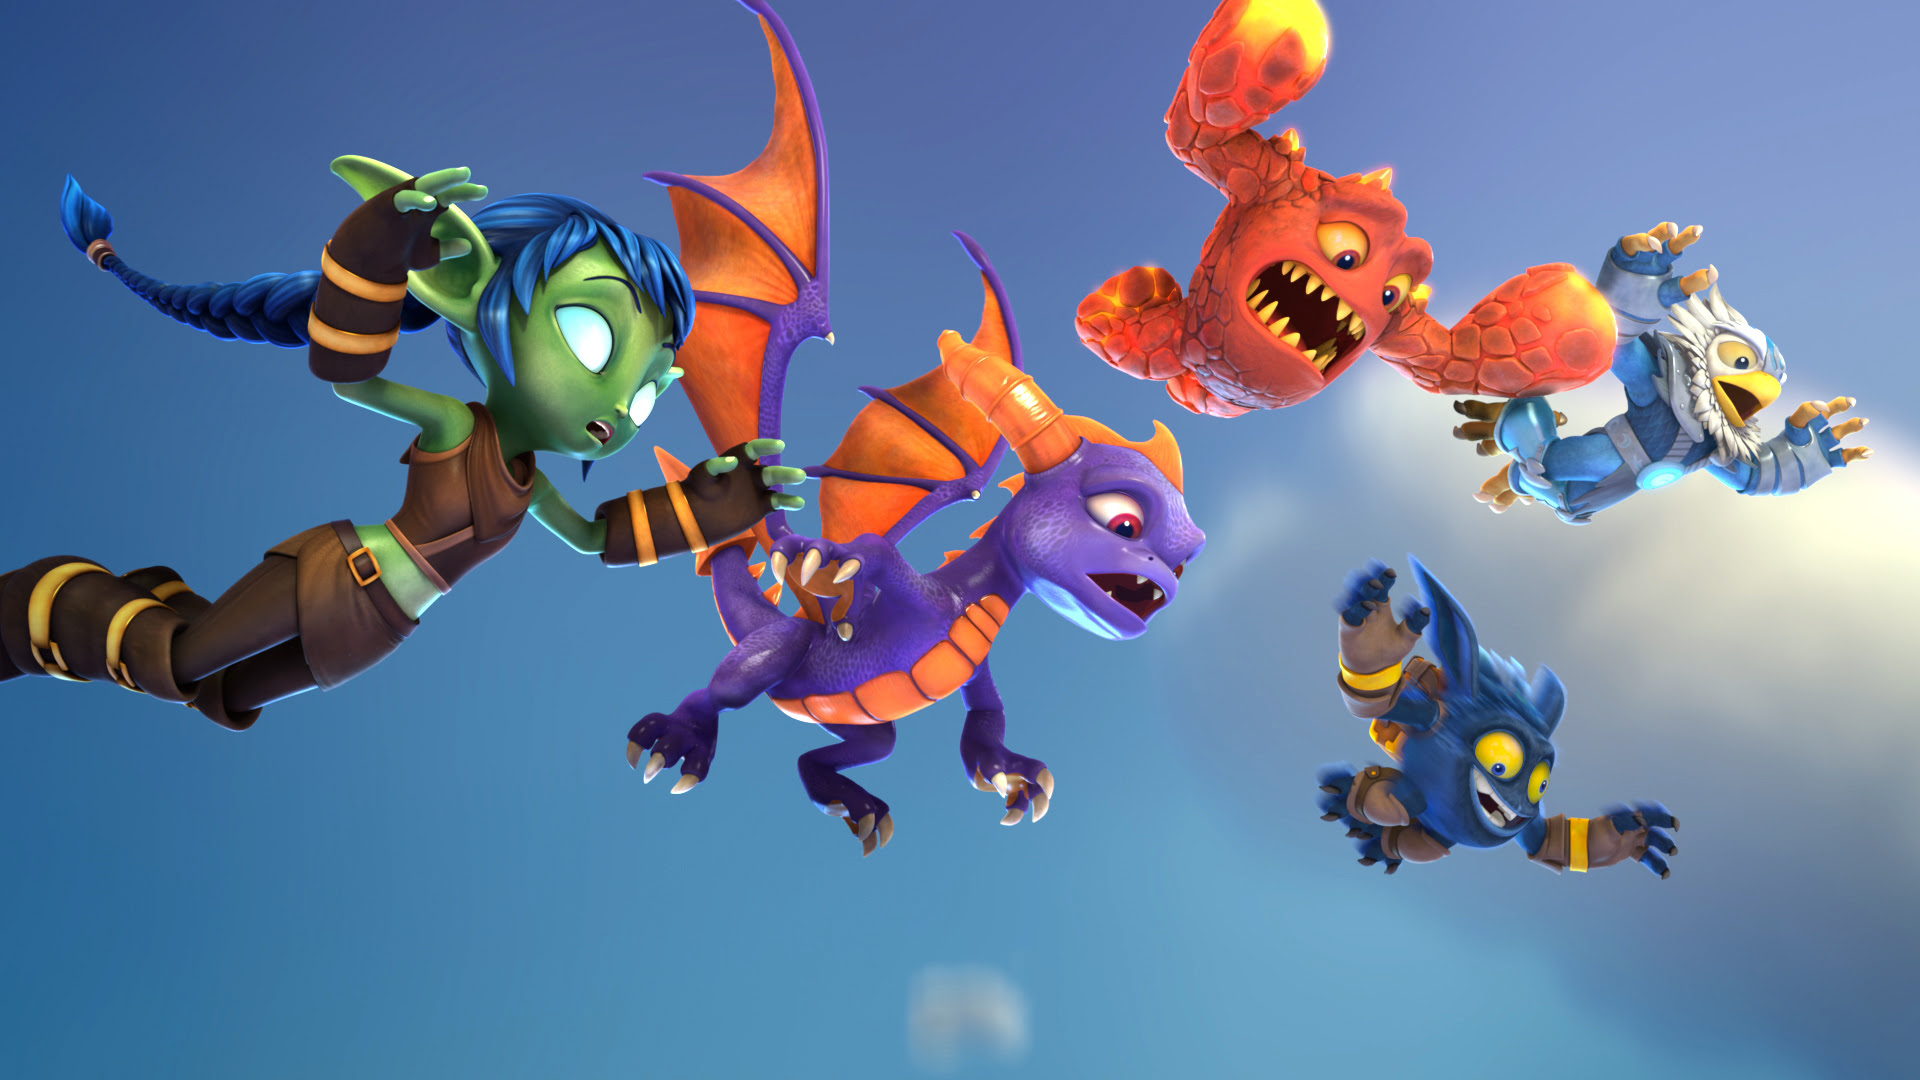 do it yourself drones with News Skylanders Academy Cartables Prets on Joy Padang Food Singapore furthermore Worlds Largest Led Screen Is Sun Powered moreover Wooden Musical Instruments Set For Children further News Skylanders Academy Cartables Prets besides Evenement Presentation De Ratchet Clank Film Jeu Video.